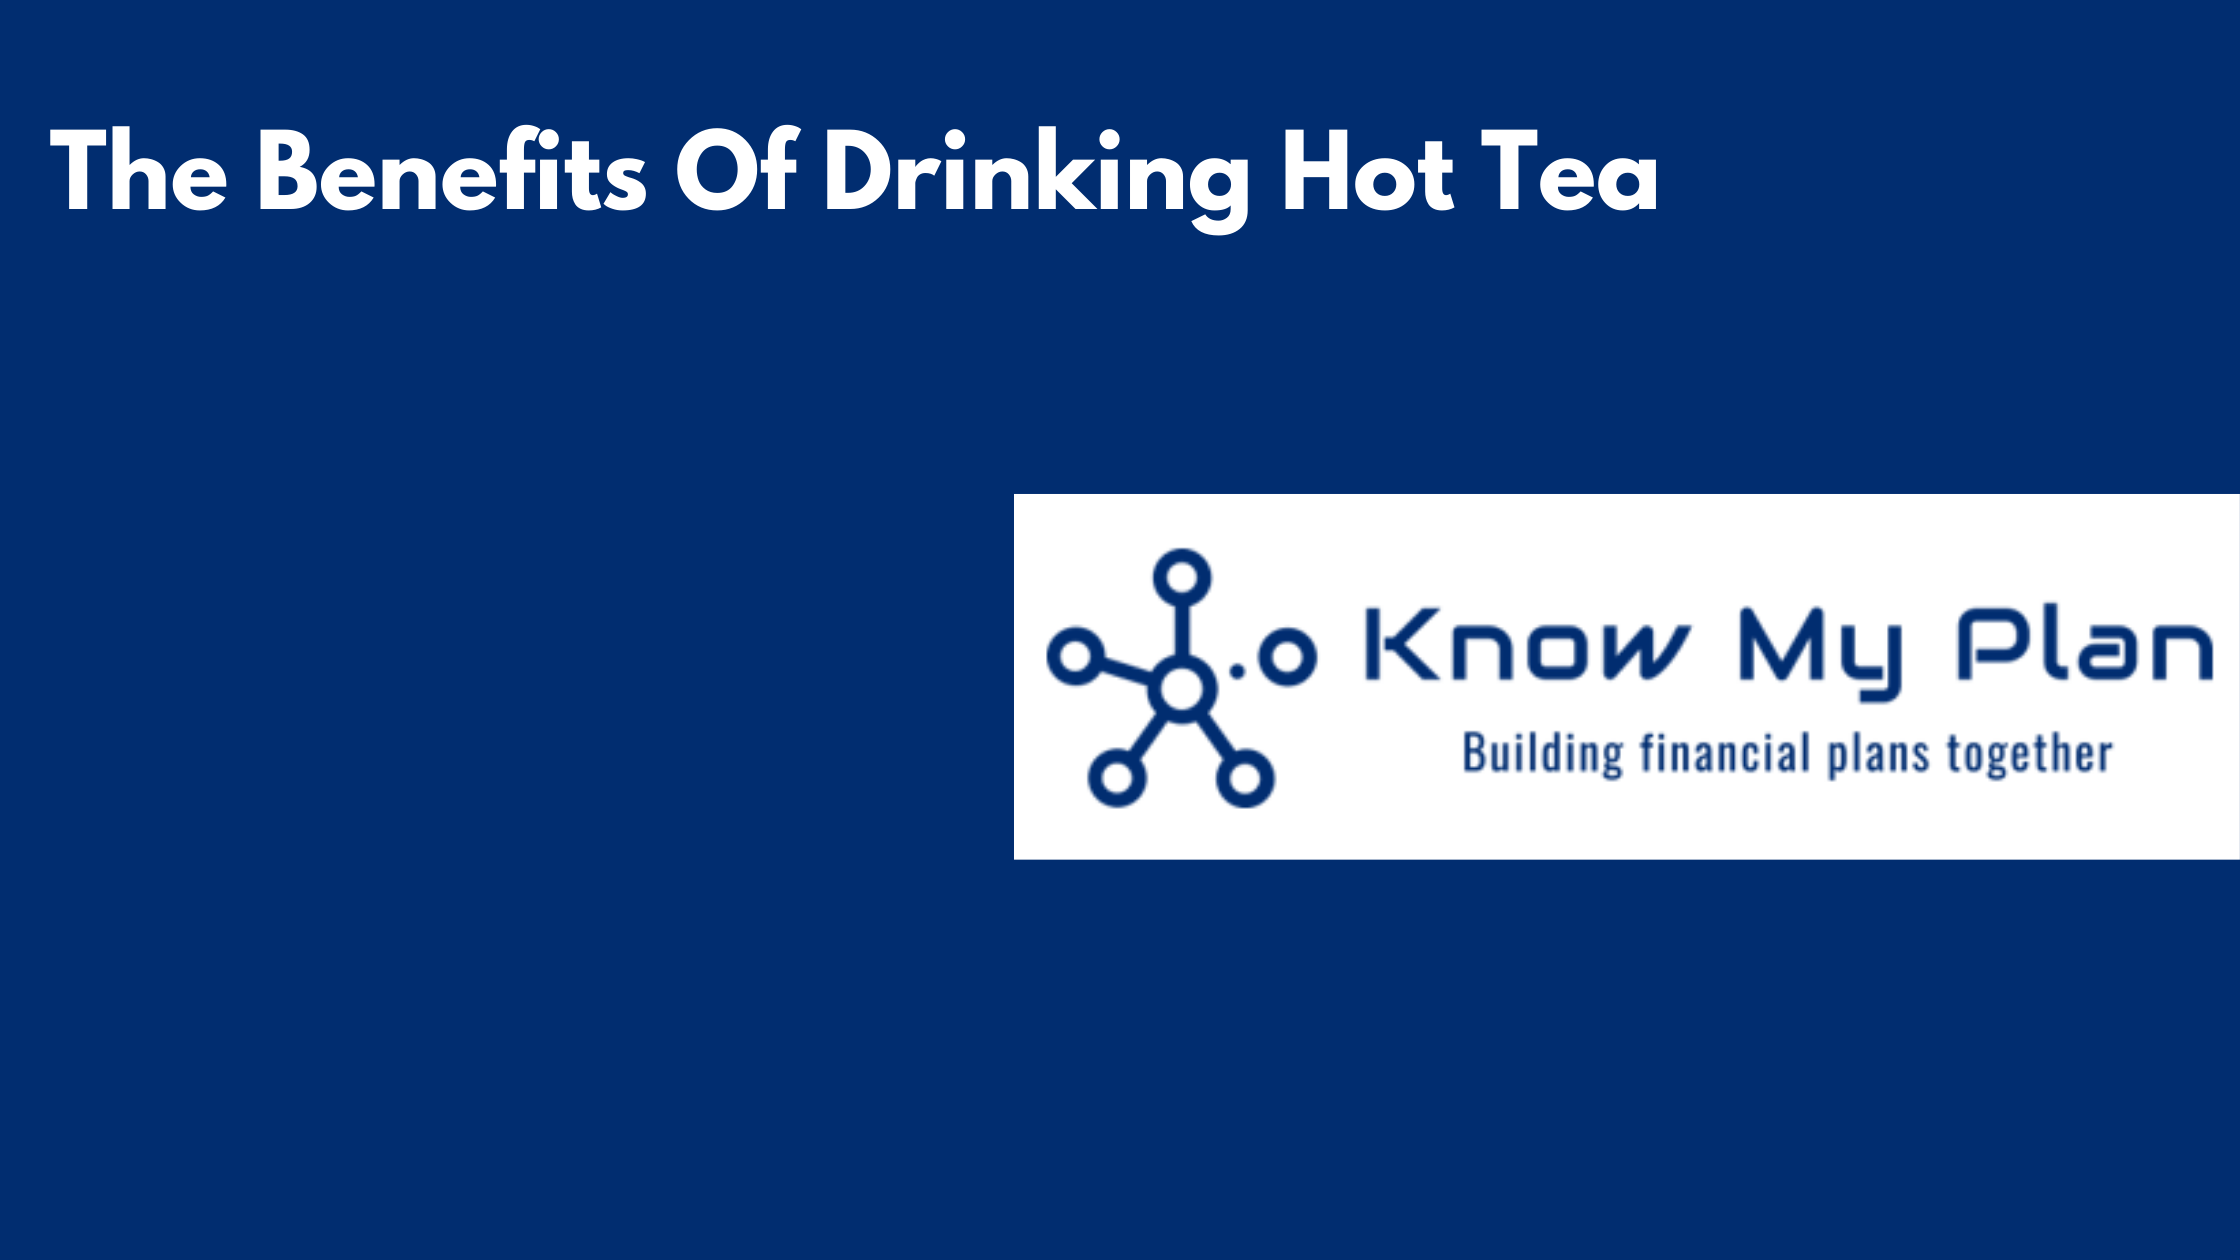 The Benefits Of Drinking Hot Tea